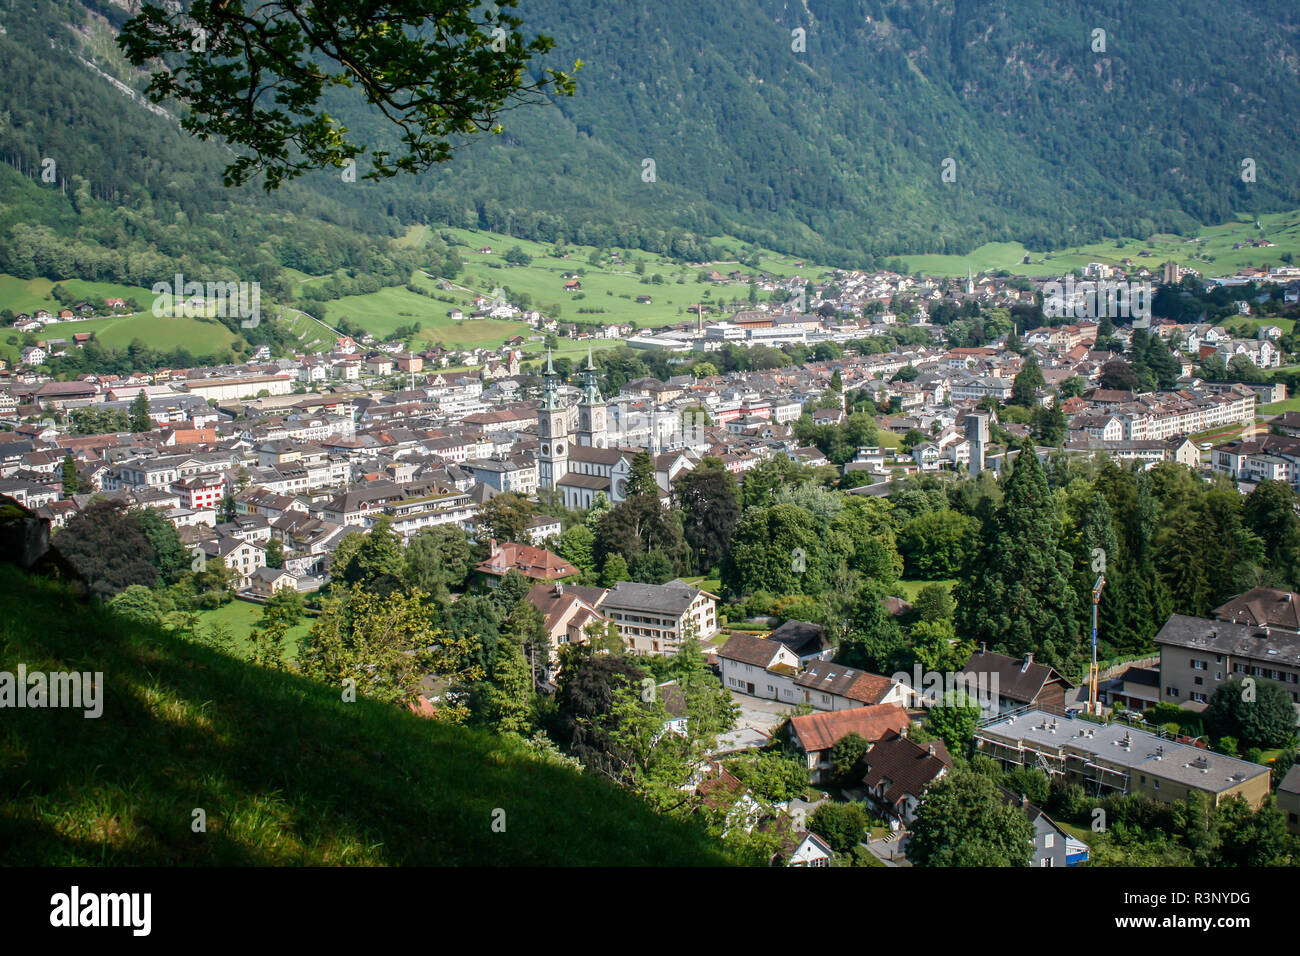 Town of Glarus from above, Switzerland - Stock Image